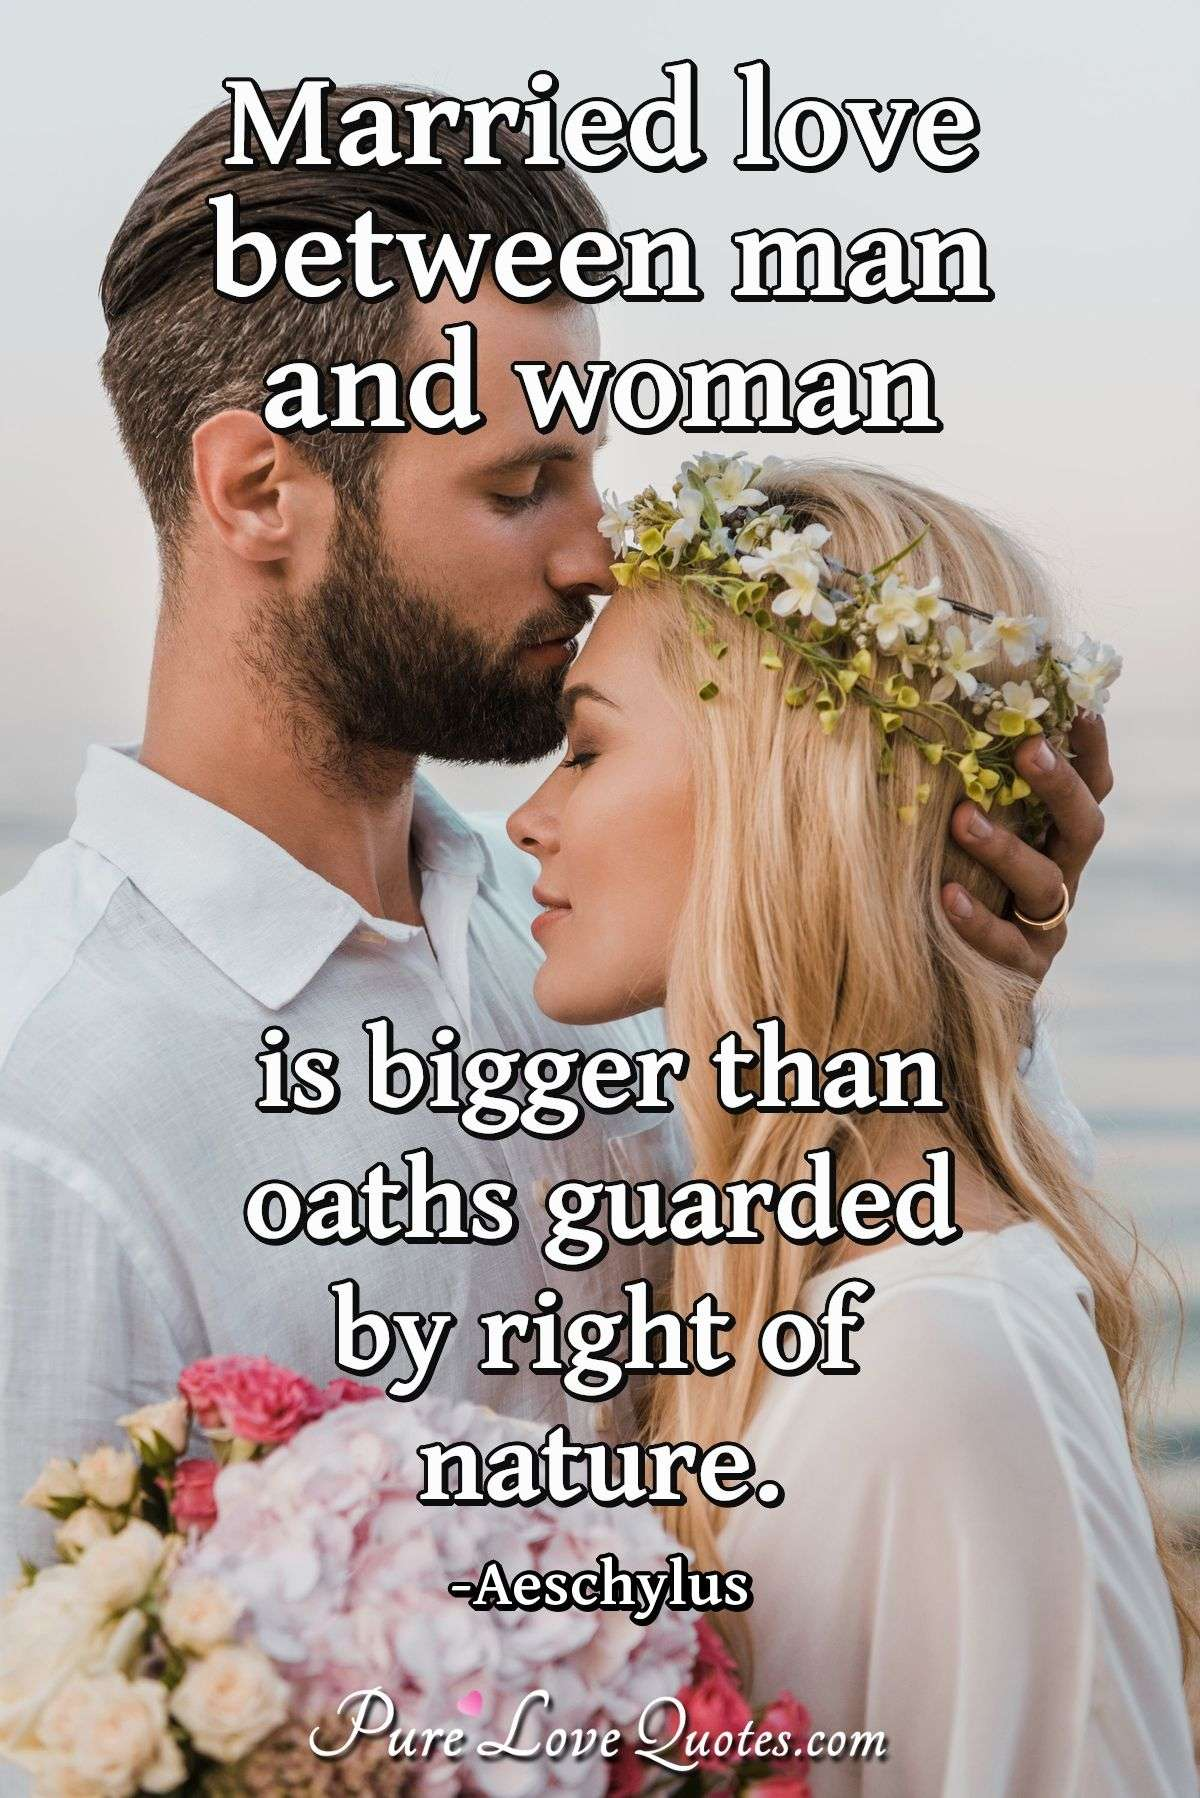 Married Woman In Love With Another Man Quotes : married, woman, another, quotes, Married, Between, Woman, Bigger, Oaths, Guarded, Right, Of..., PureLoveQuotes